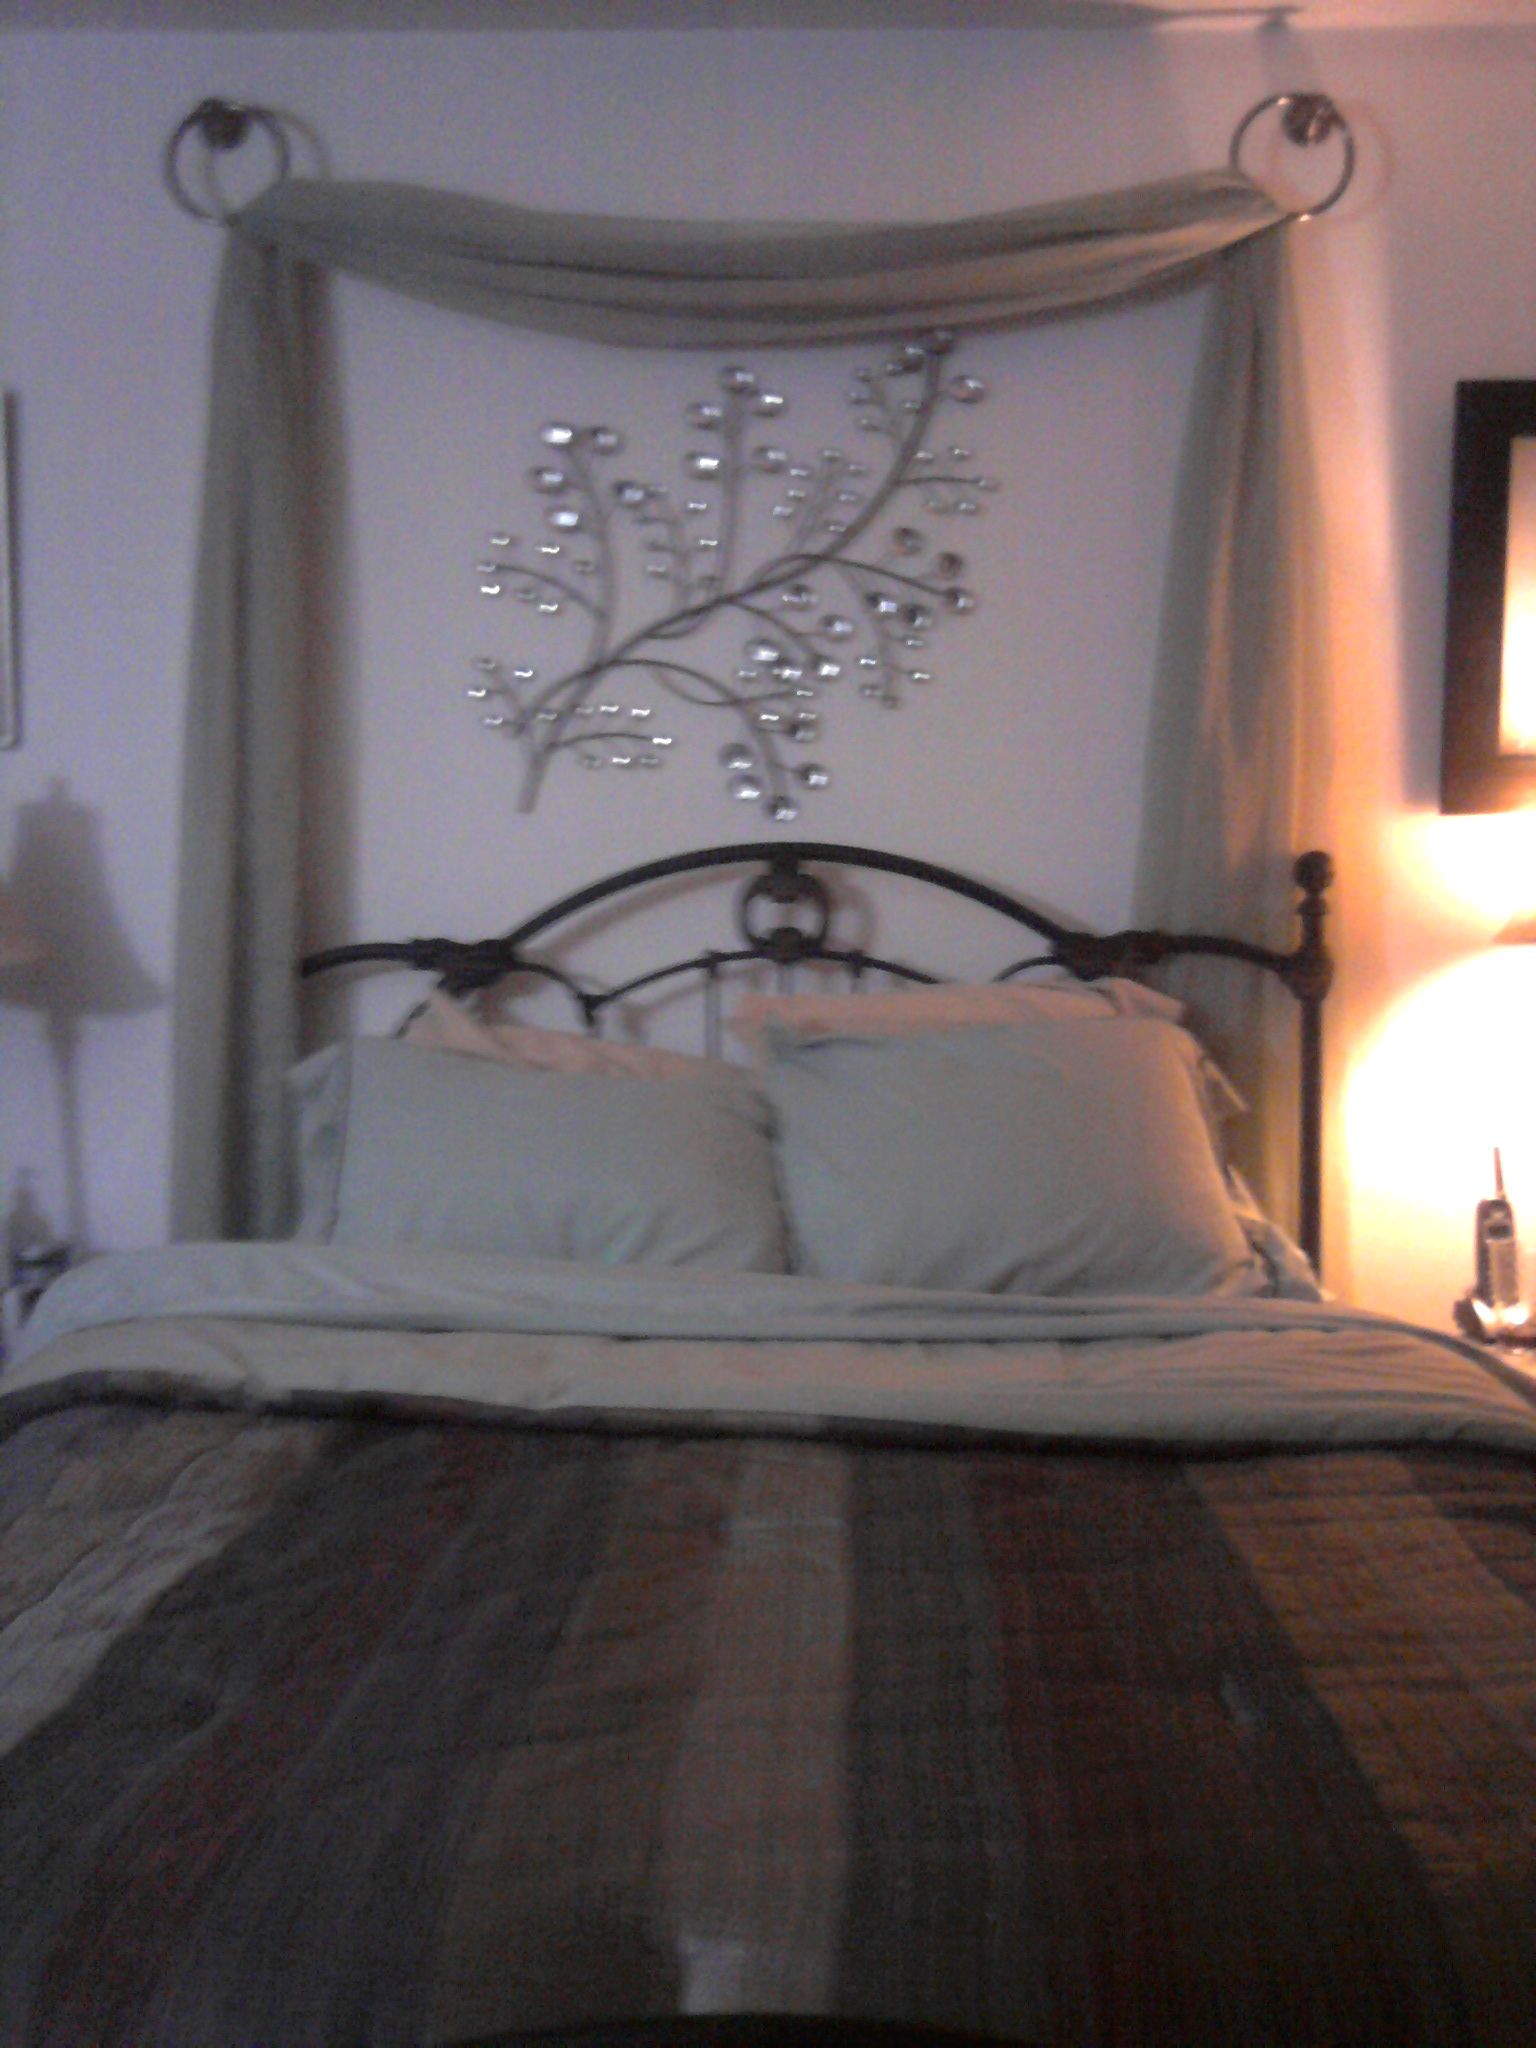 love the drape behind the bed home   decor pinterest paris rooms antiparos paris rooms antiparos